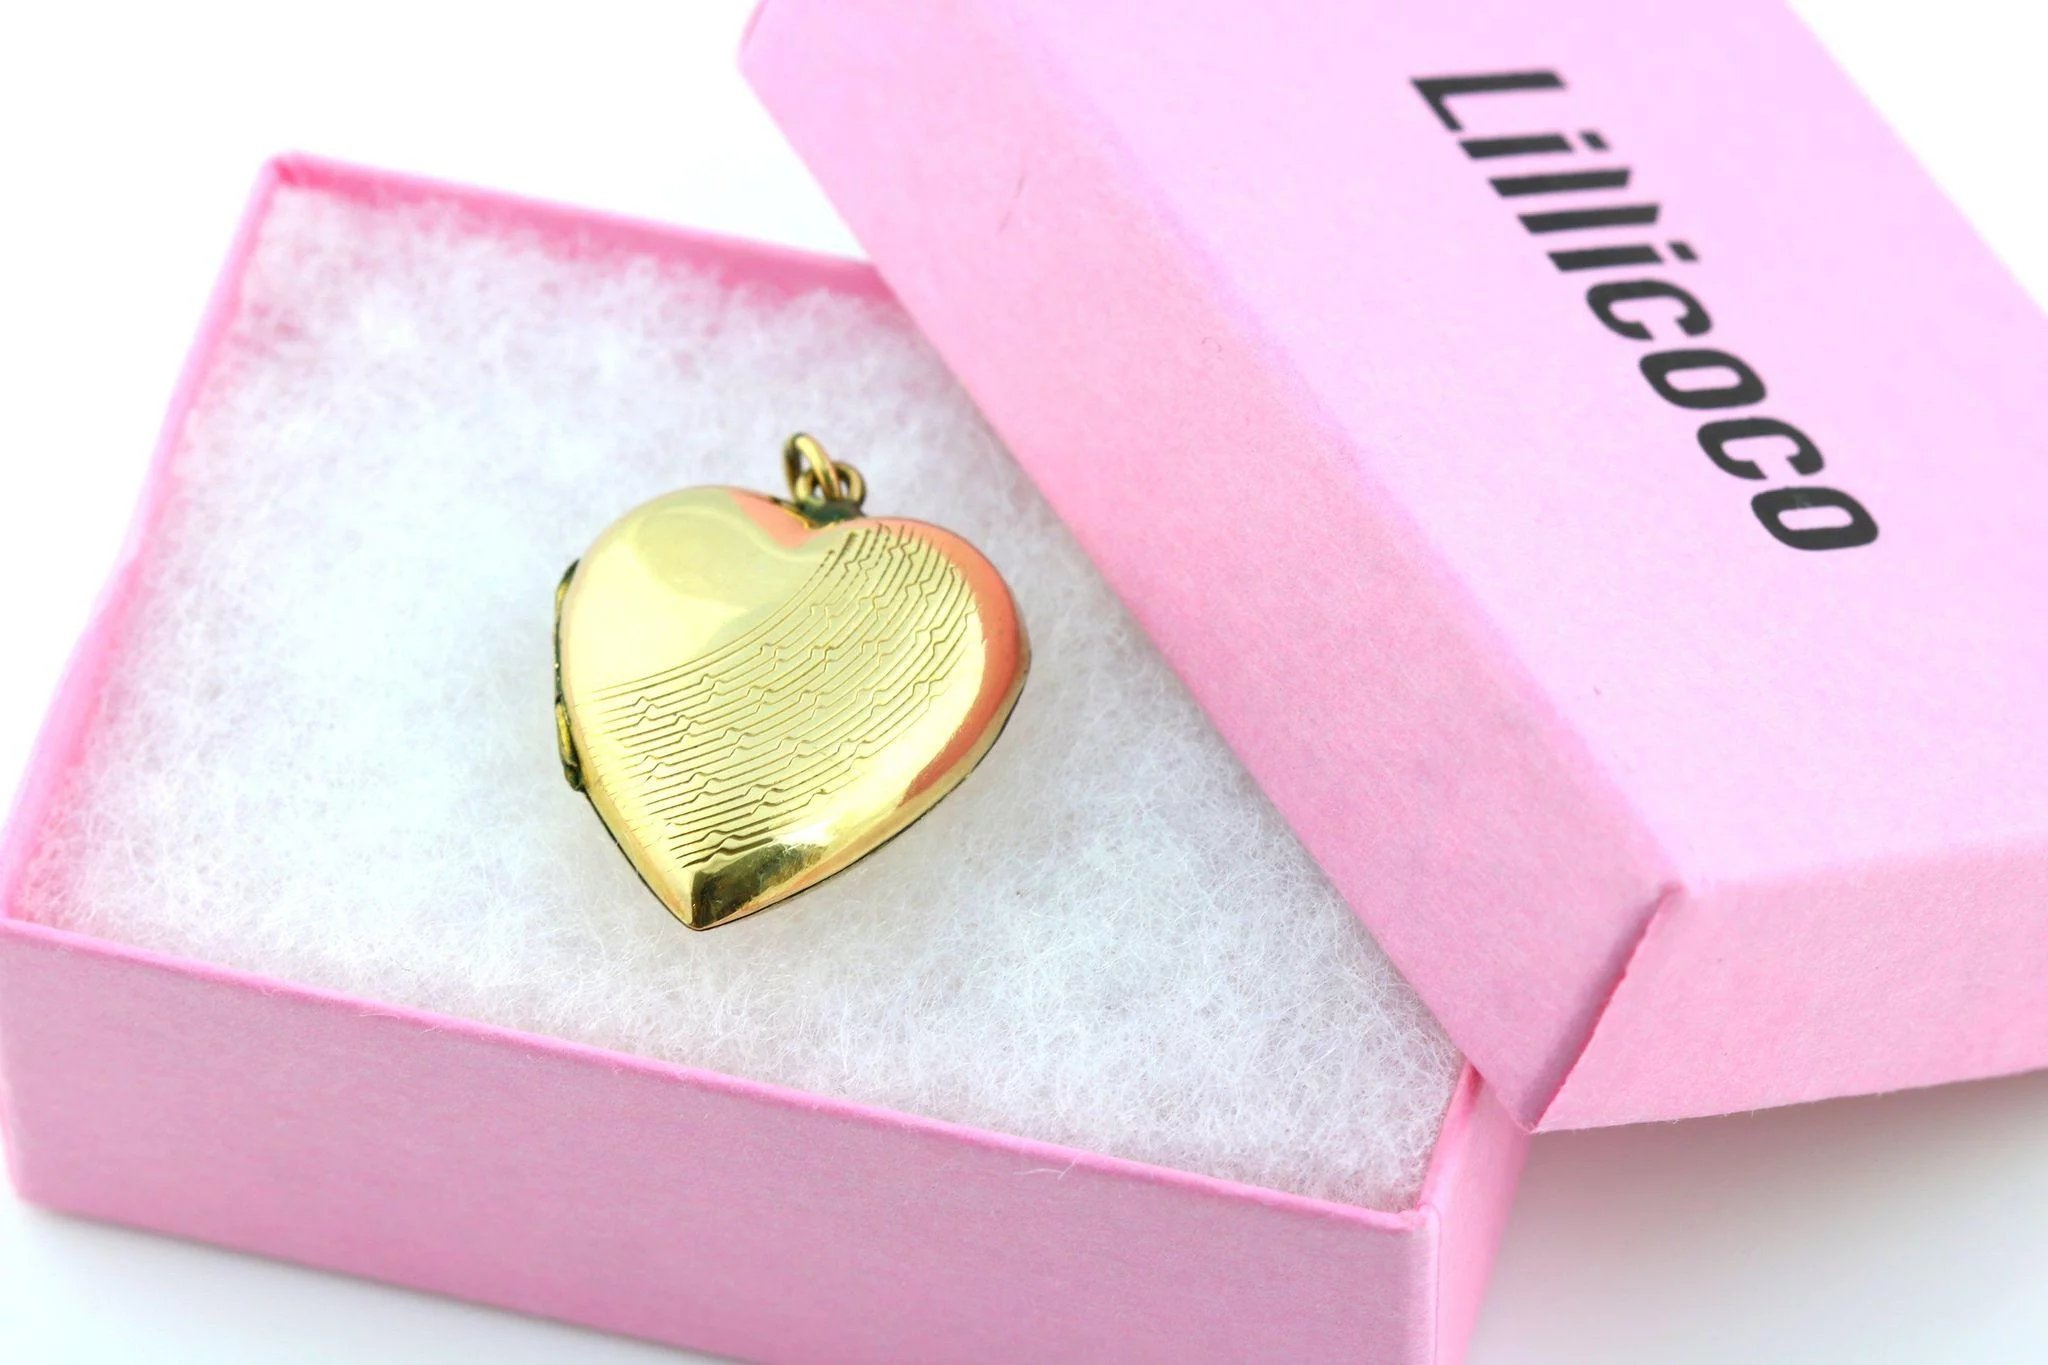 Charming Art Deco 9ct Gold Heart Locket with Pretty Sunrays Design ...